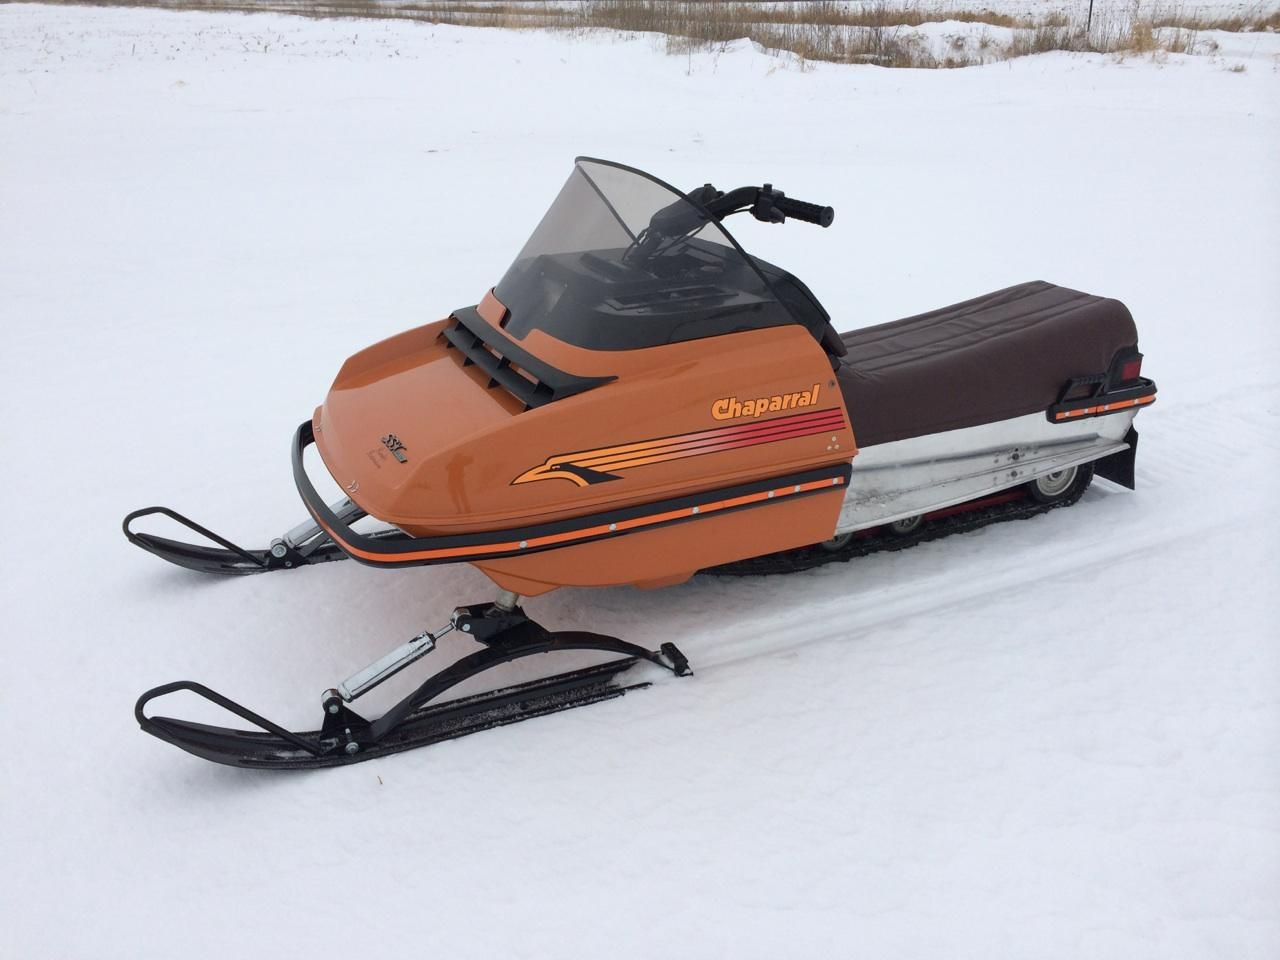 1974 Chaparral SSX 440. Snow Machine, Snowmobiles